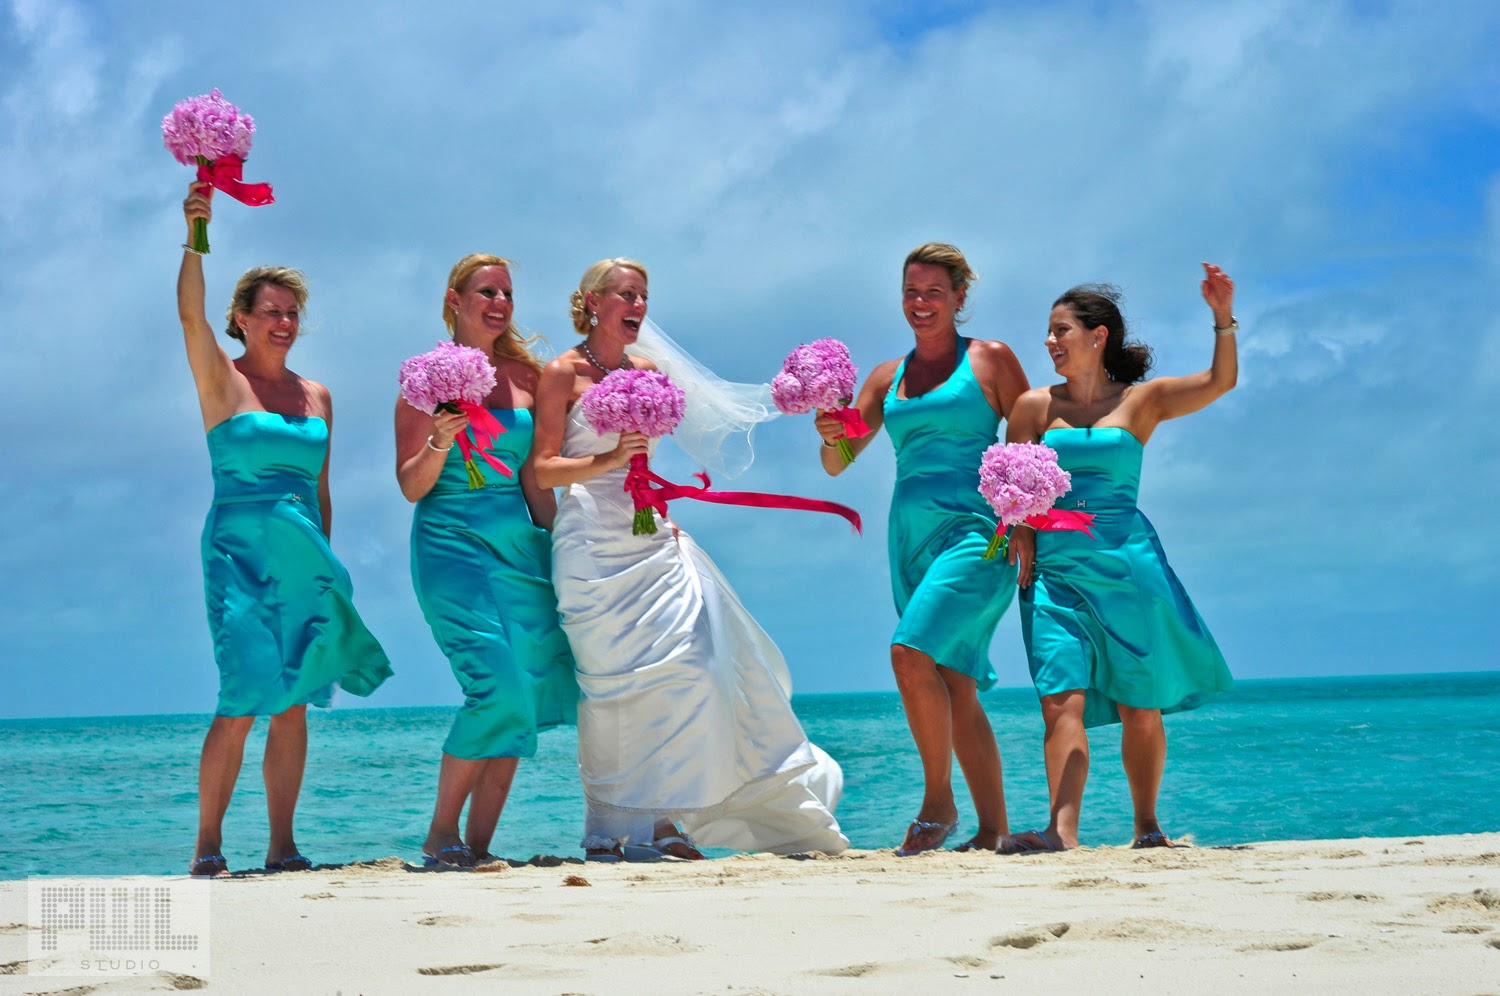 Johnathan b drewblog turquoise bridesmaid dresses add romantic for years girls dont stop to seek for dresses that seem rather simple but sophisticated these desires are certainly recognized by fashion elites ombrellifo Image collections